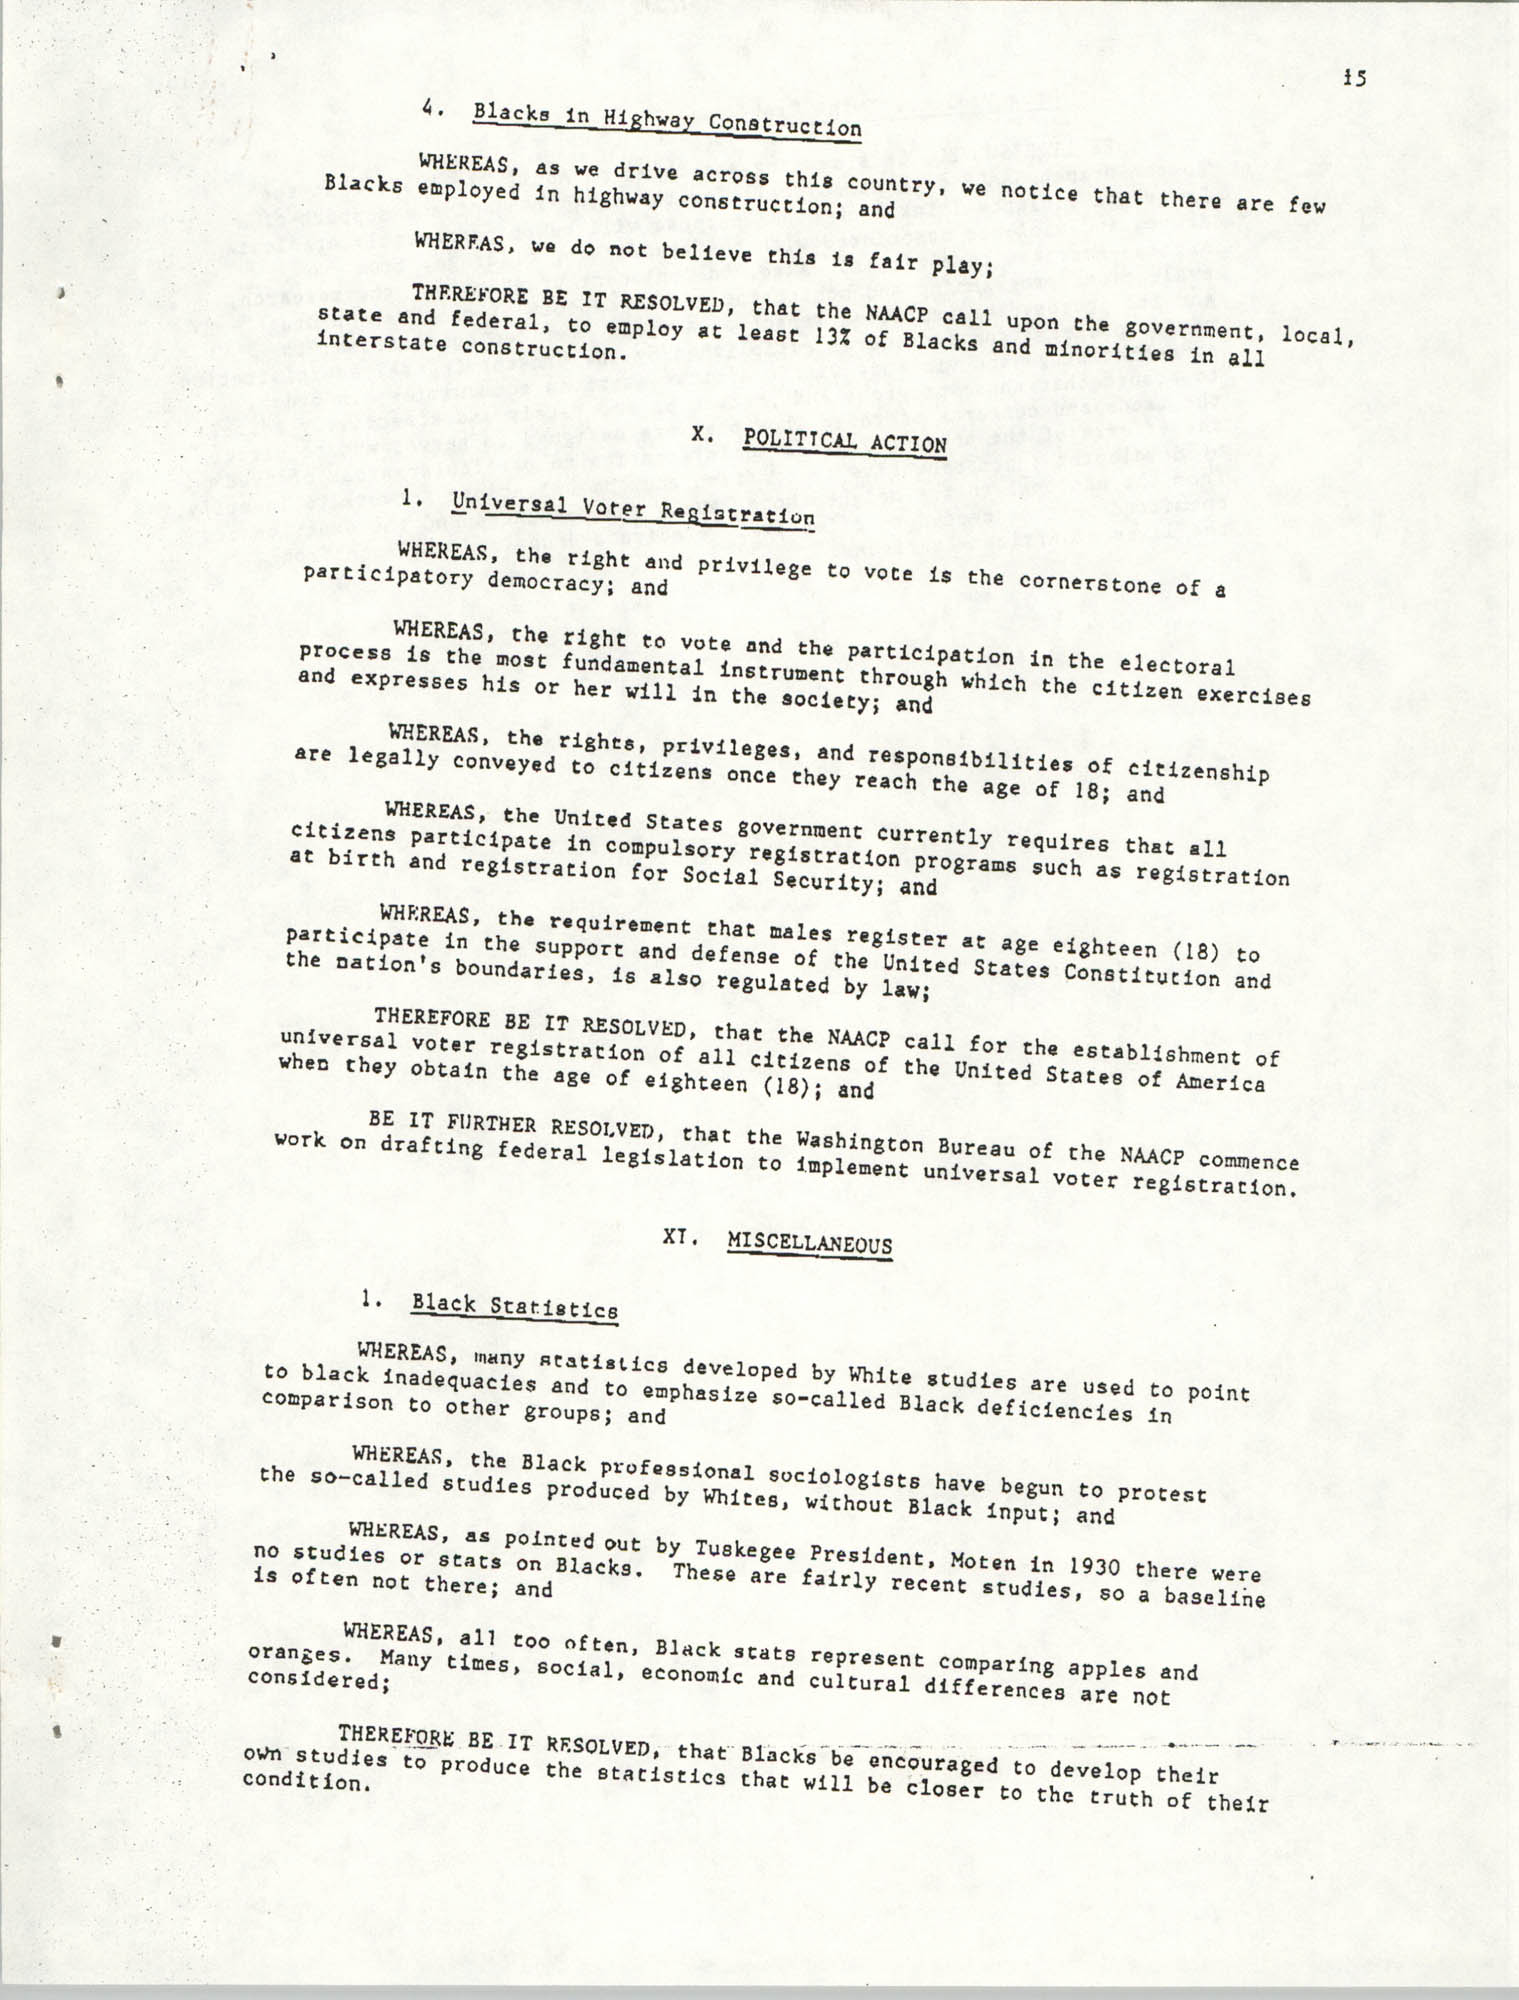 Resolutions Submitted Under Article X, Section 2 of the Constitution of the NAACP, Page 15